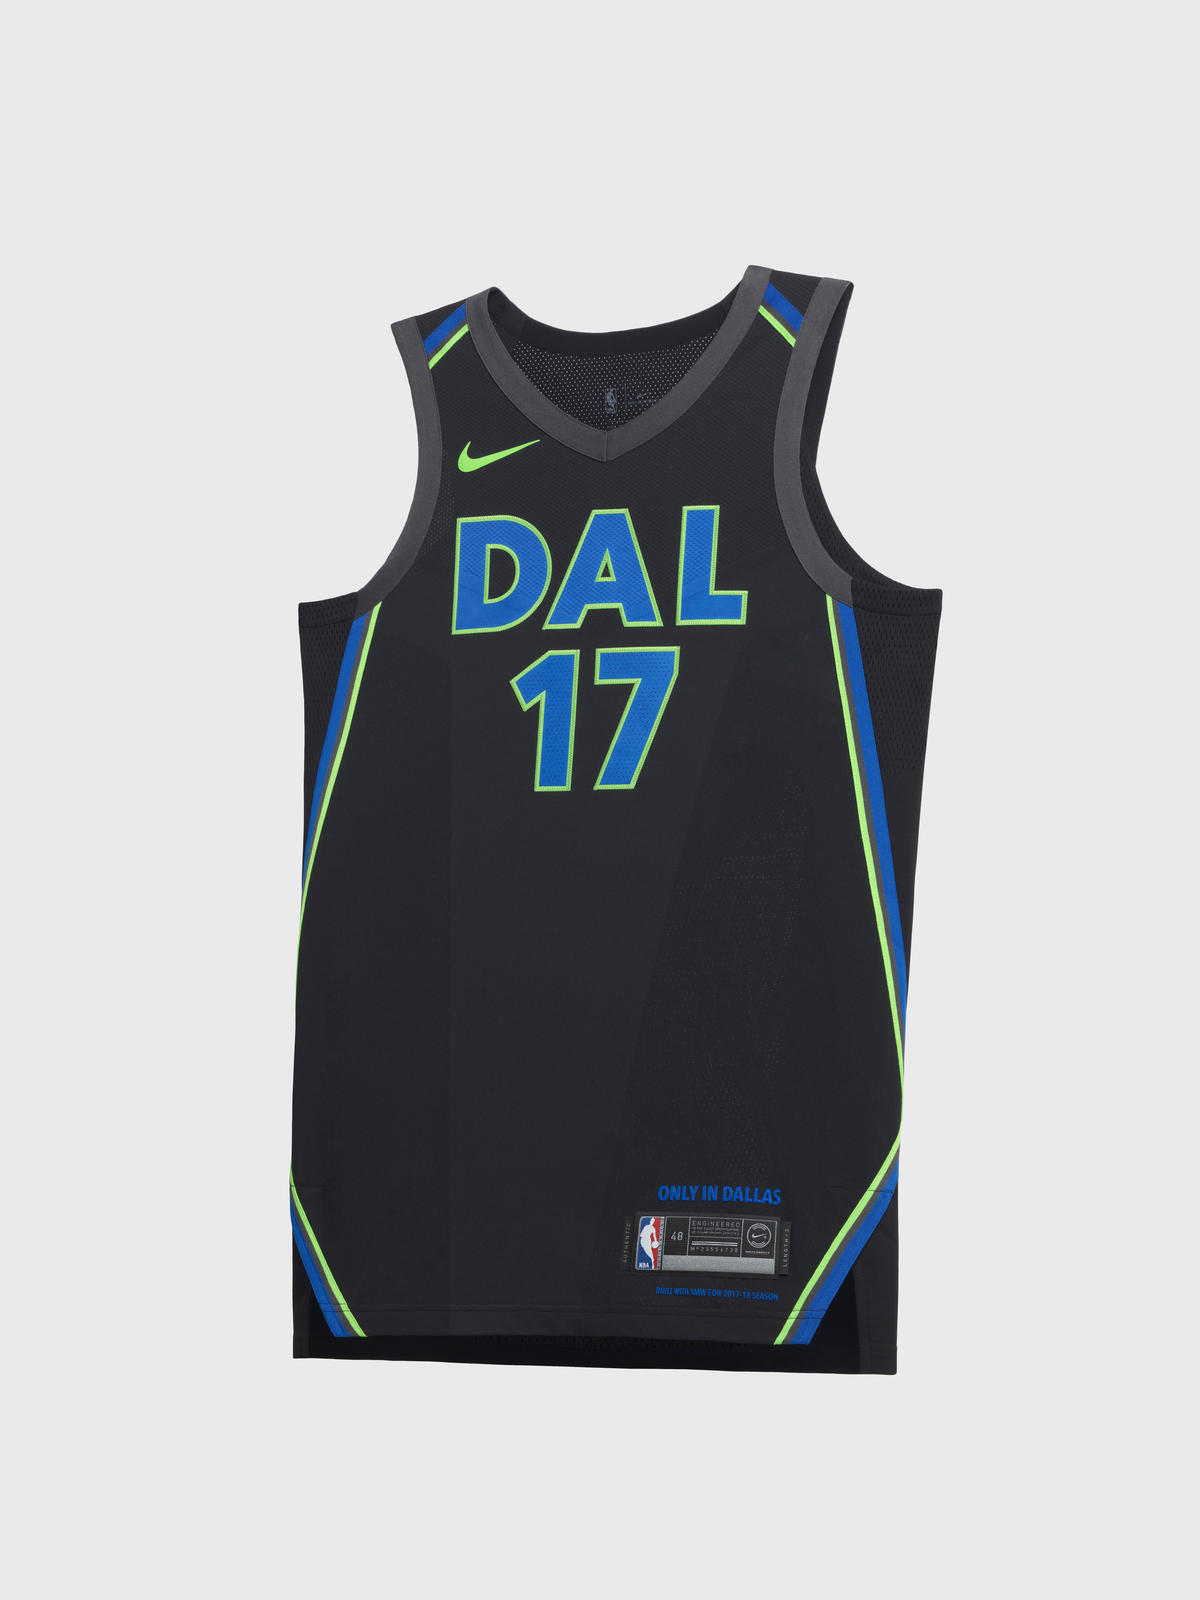 0aea3e07660 Nike NBA City Edition Uniform - Nike News